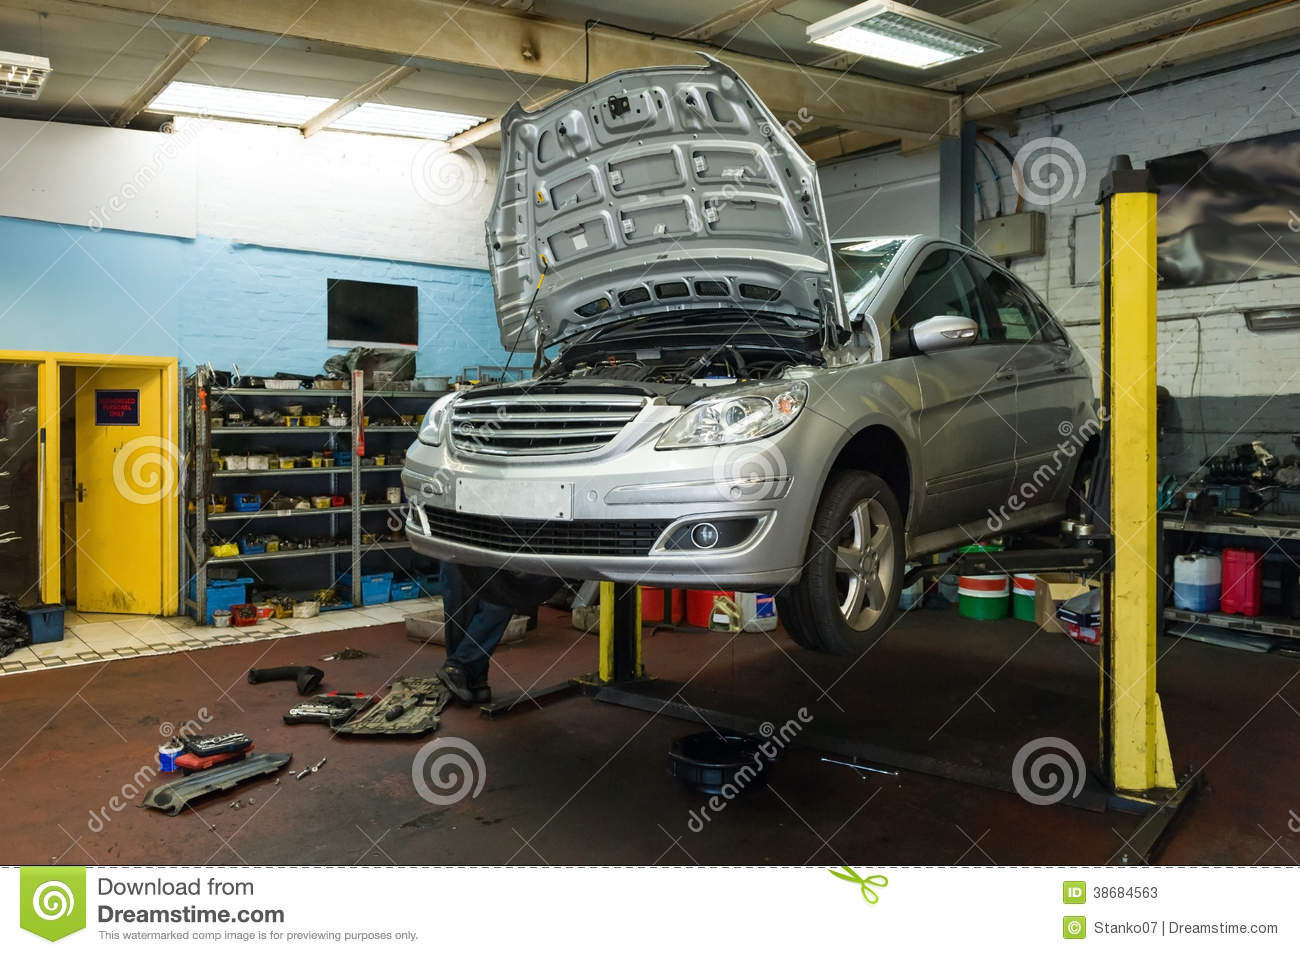 Car On A Lift In Garage Stock Image Image Of Engineering 38684563